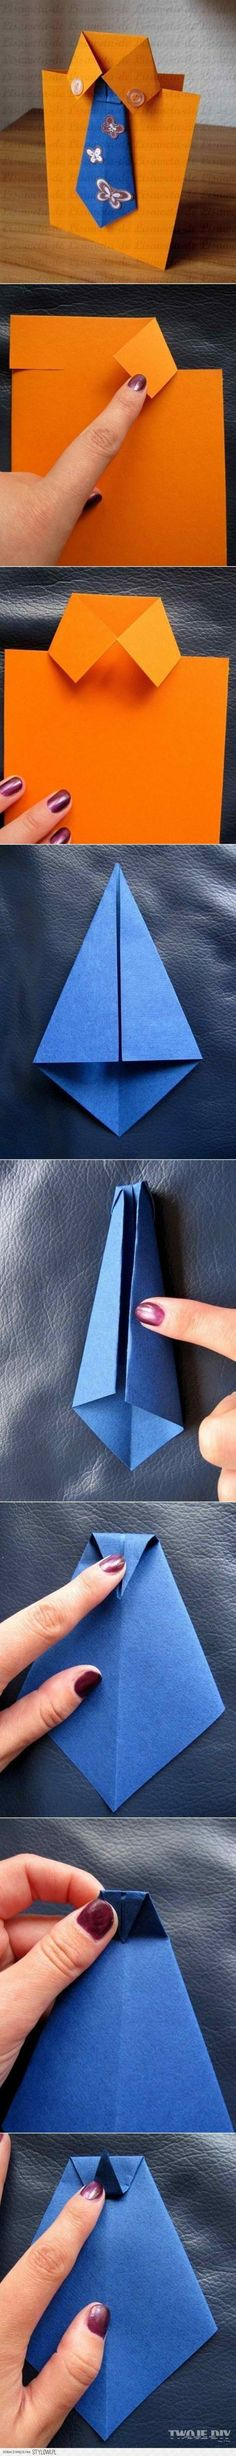 Necktie Card | DIY Ideas For Father's Day Cards